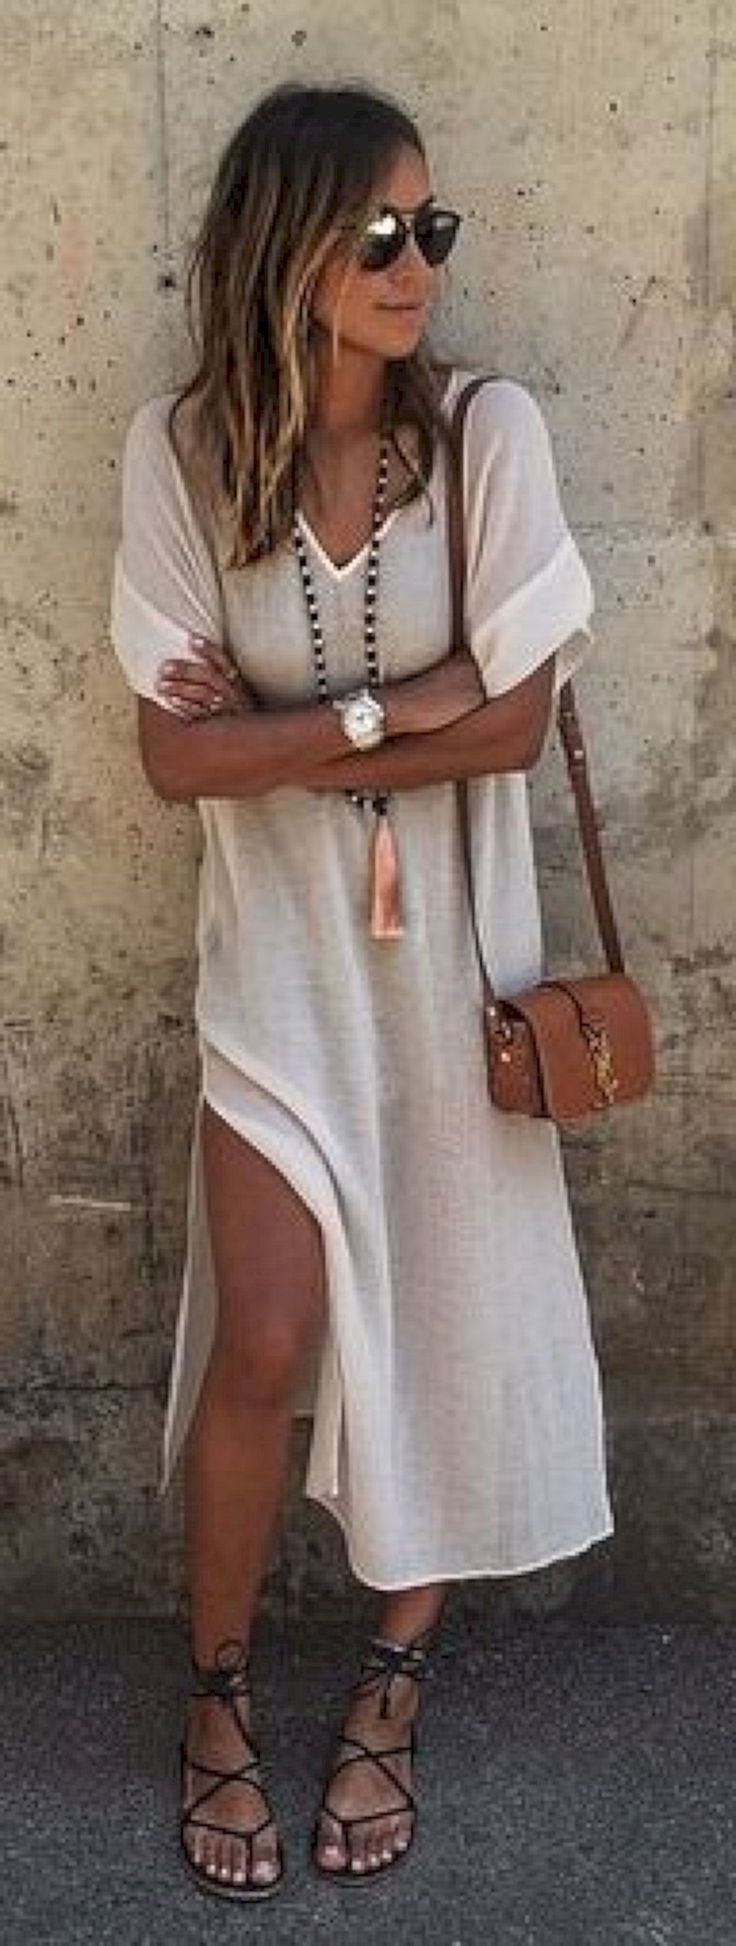 Amazing 40 Best Women's Fashion Outfit for Perfect Summer https://www.tukuoke.com/40-best-womens-fashion-outfit-for-perfect-summer-3430